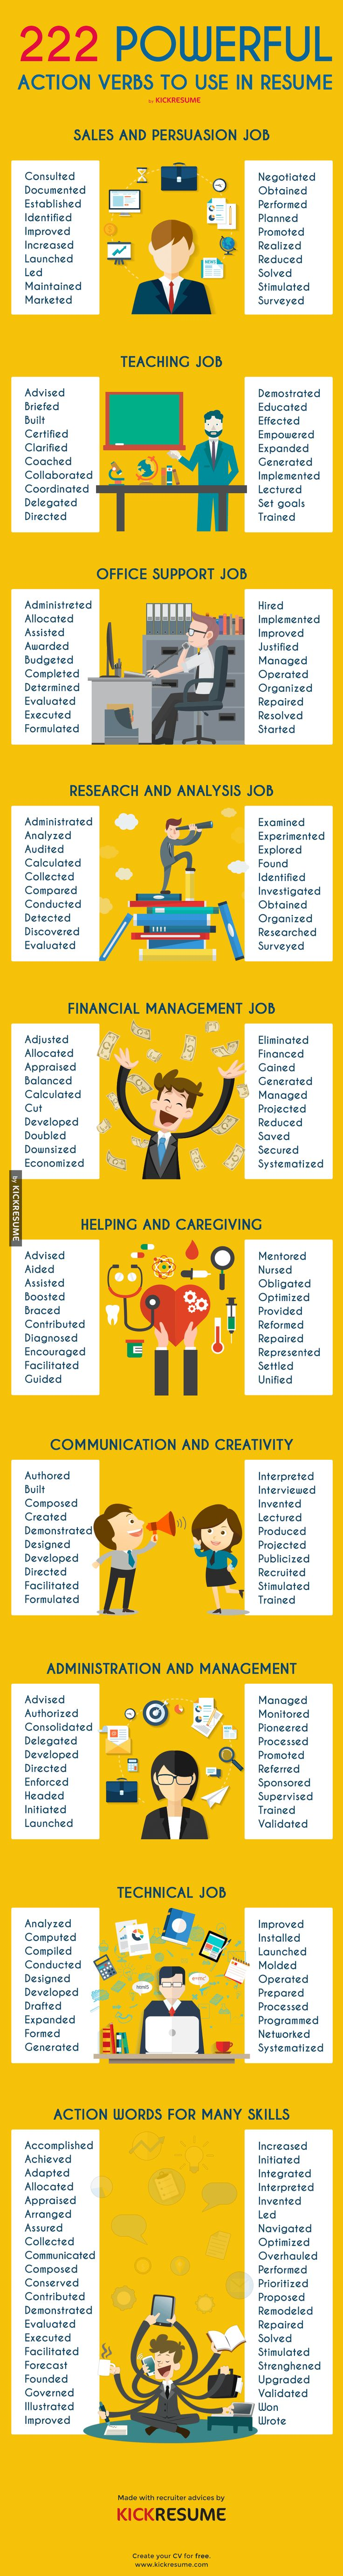 17 best images about hr on pinterest